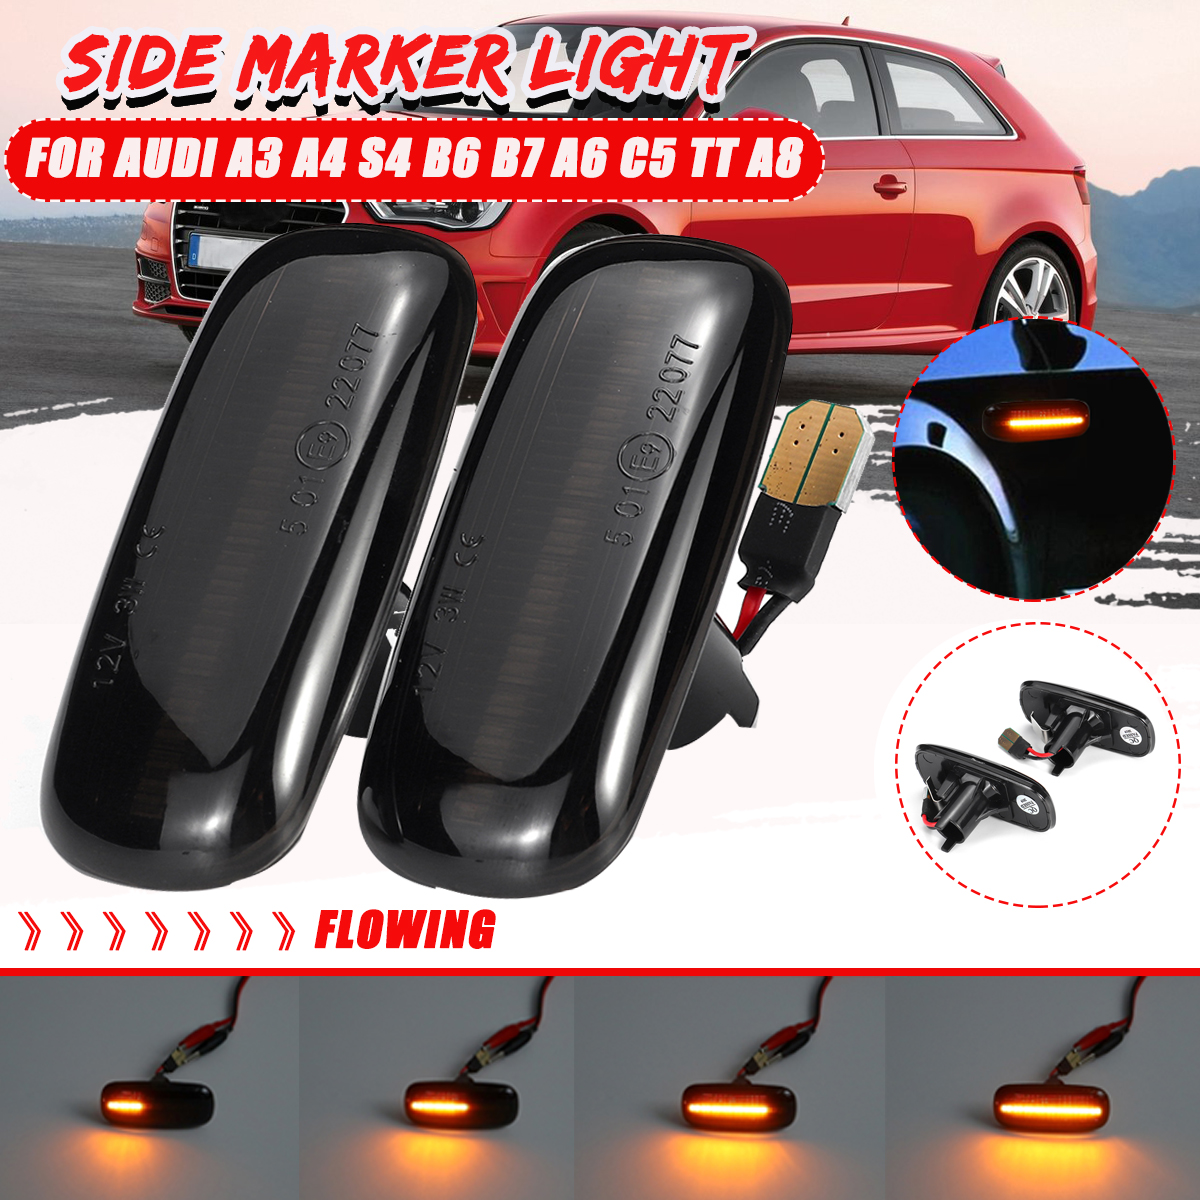 Dynamic Flowing SMD Smoke Amber Led Side Marker Turn Signal Light for Audi A3 S3 8P A4 S4 RS4 B6 B7 B8 A6 S6 RS6 C5 C7 White Indicator Lamp Replacement